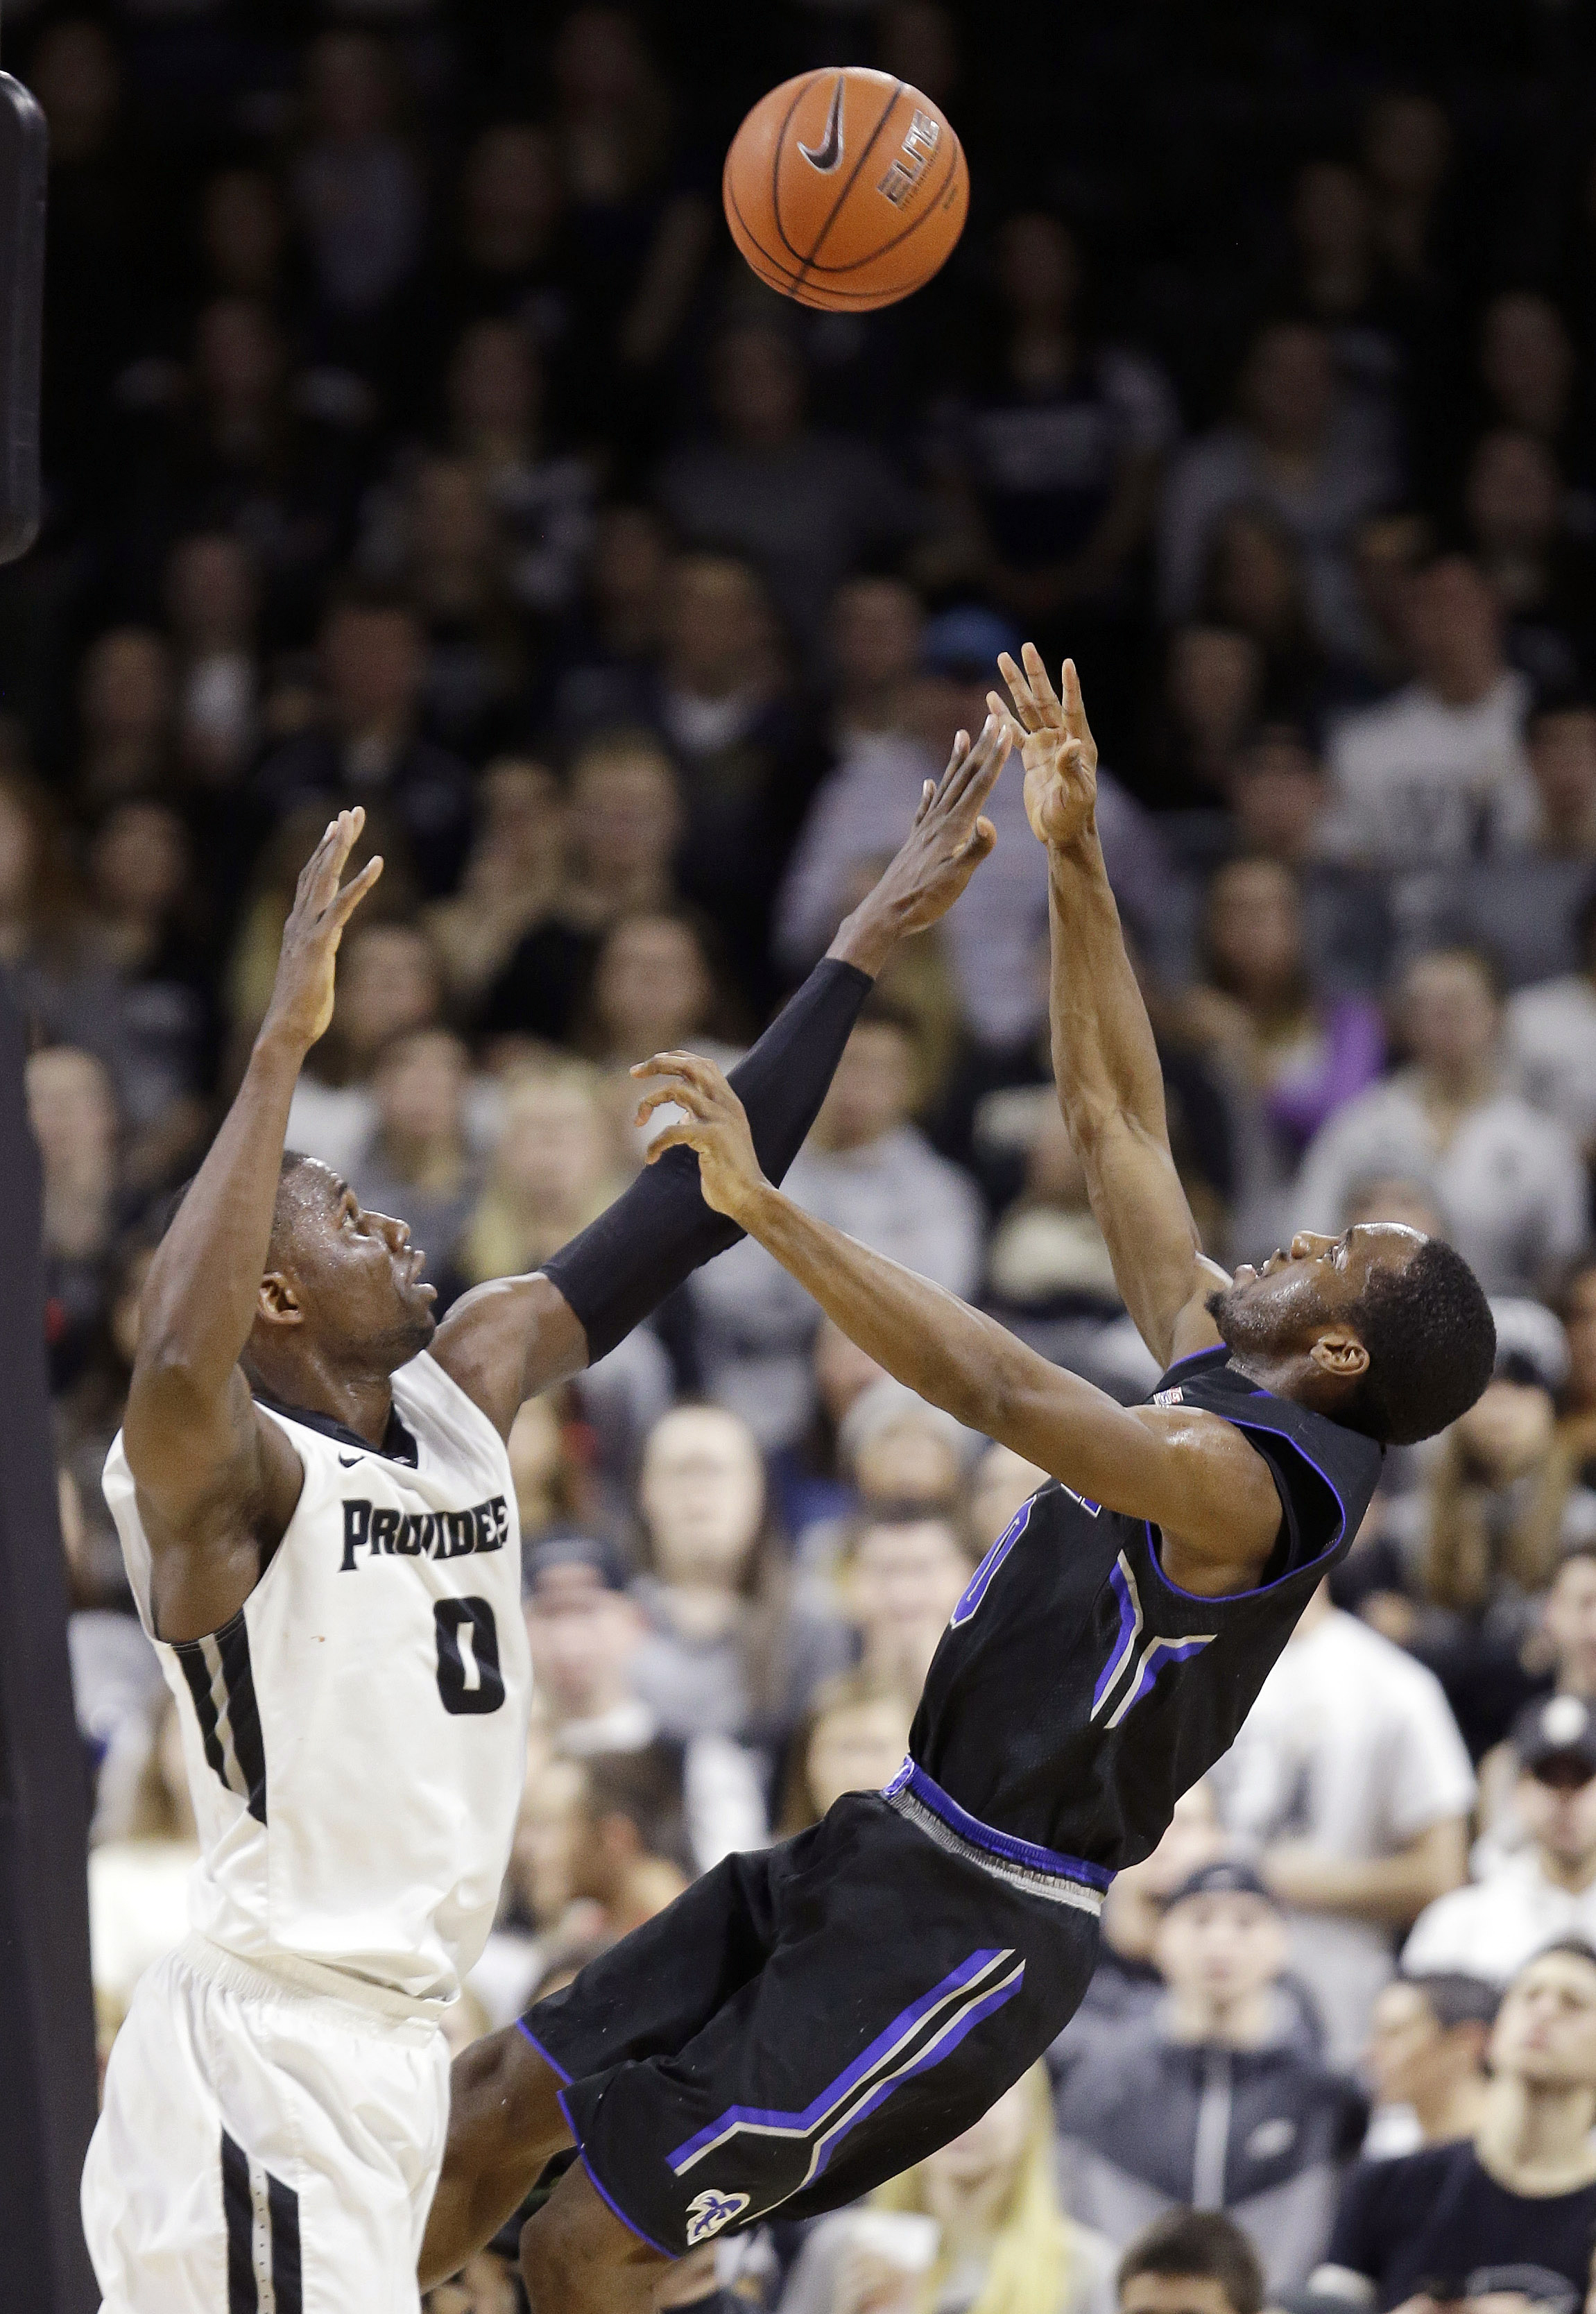 Seton Hall guard Khadeen Carrington (0) shoots over Providence forward Ben Bentil (0) during the first half of an NCAA college basketball game Saturday, Jan. 16, 2016, in Providence, R.I. Seton Hall defeated Providence 81-72. (AP Photo/Stephan Savoia)